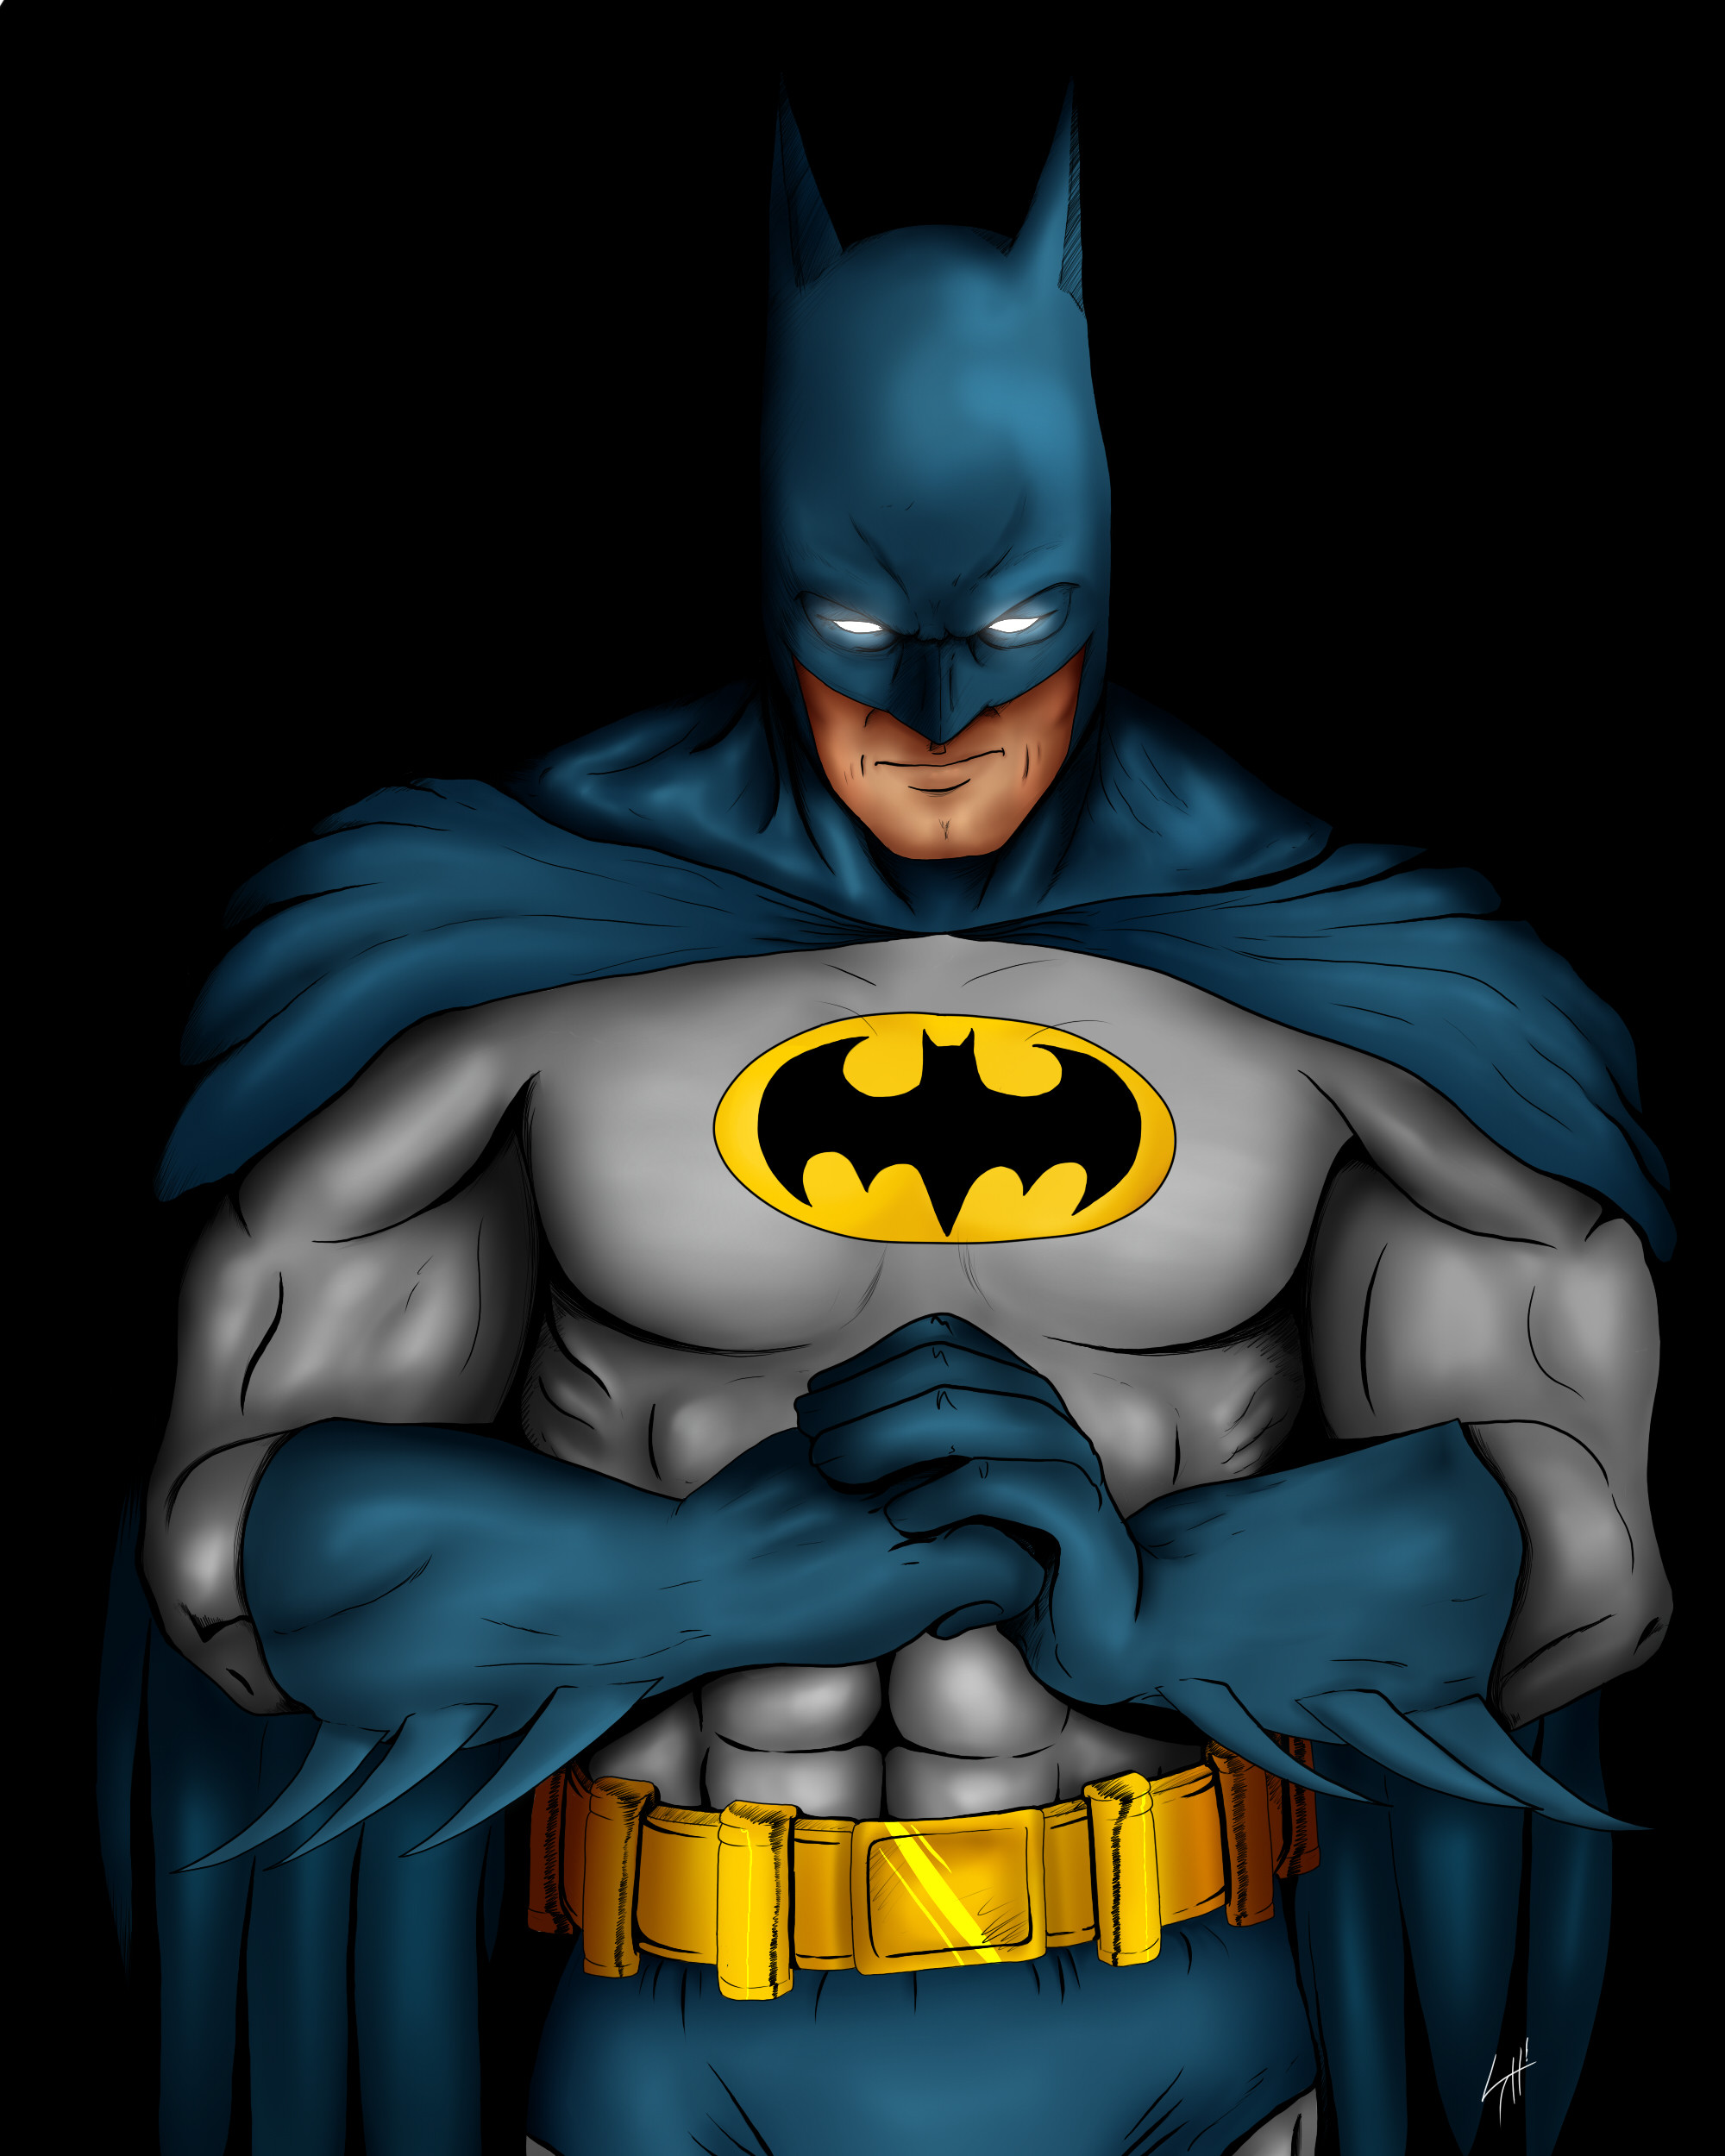 Batman cartoon wallpaper 76 images - Batman cartoon images ...